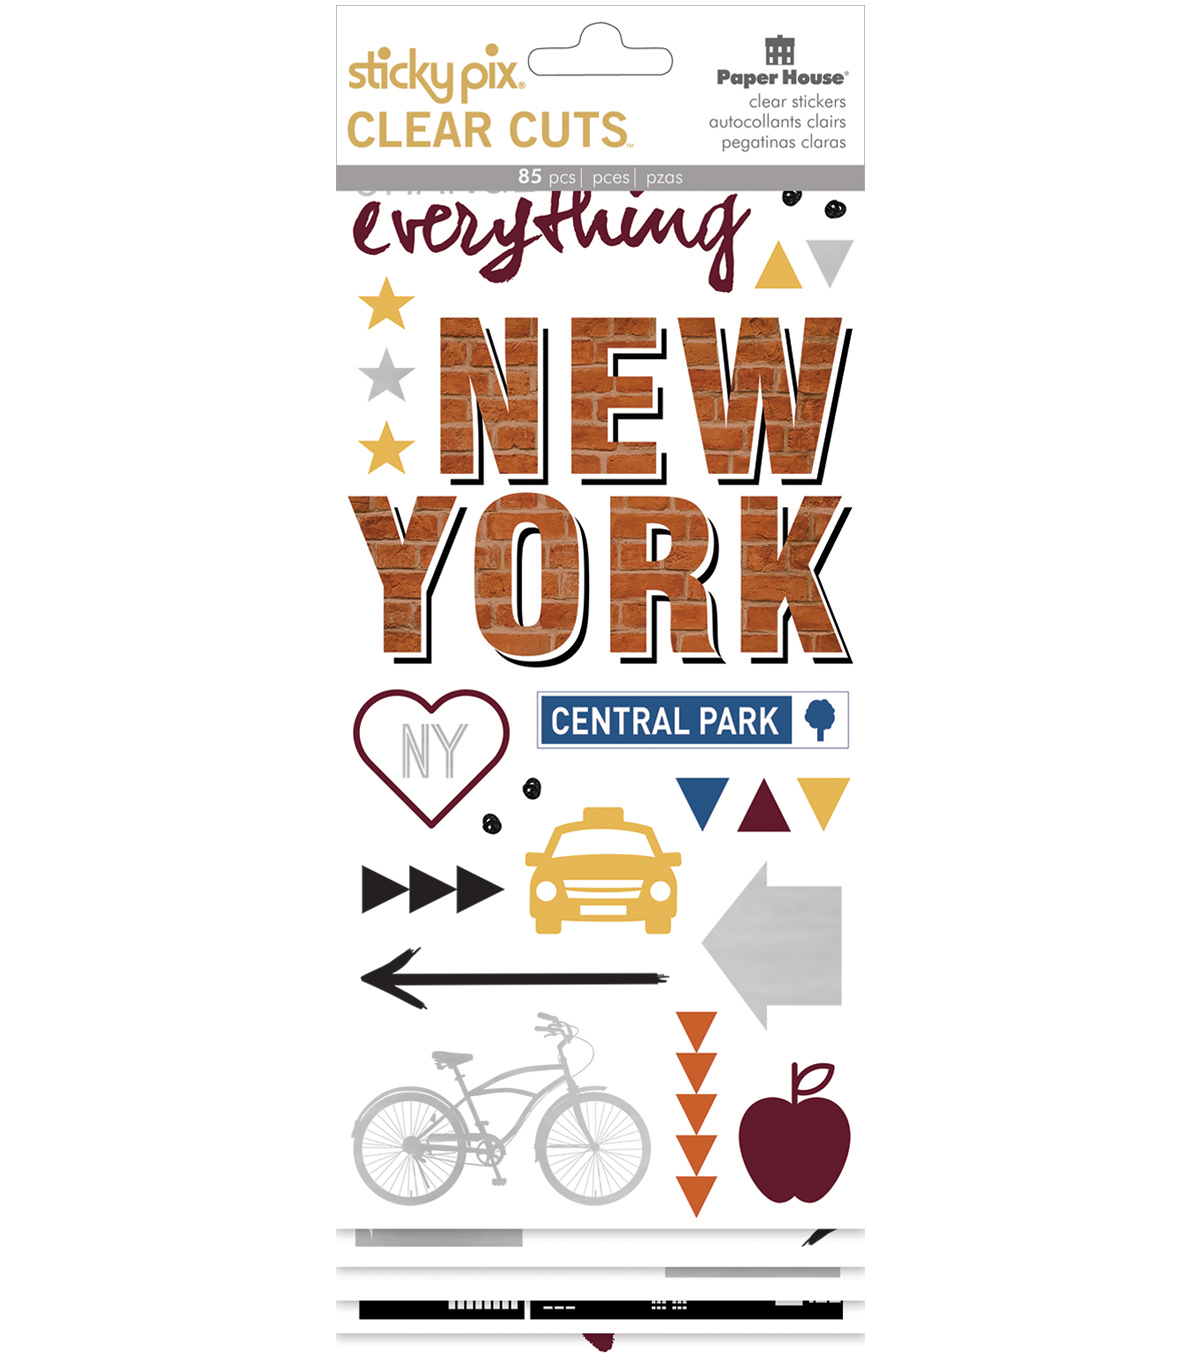 Paper House® Sticky Pix Clear Cuts Pack of 85 Sticker-New York City